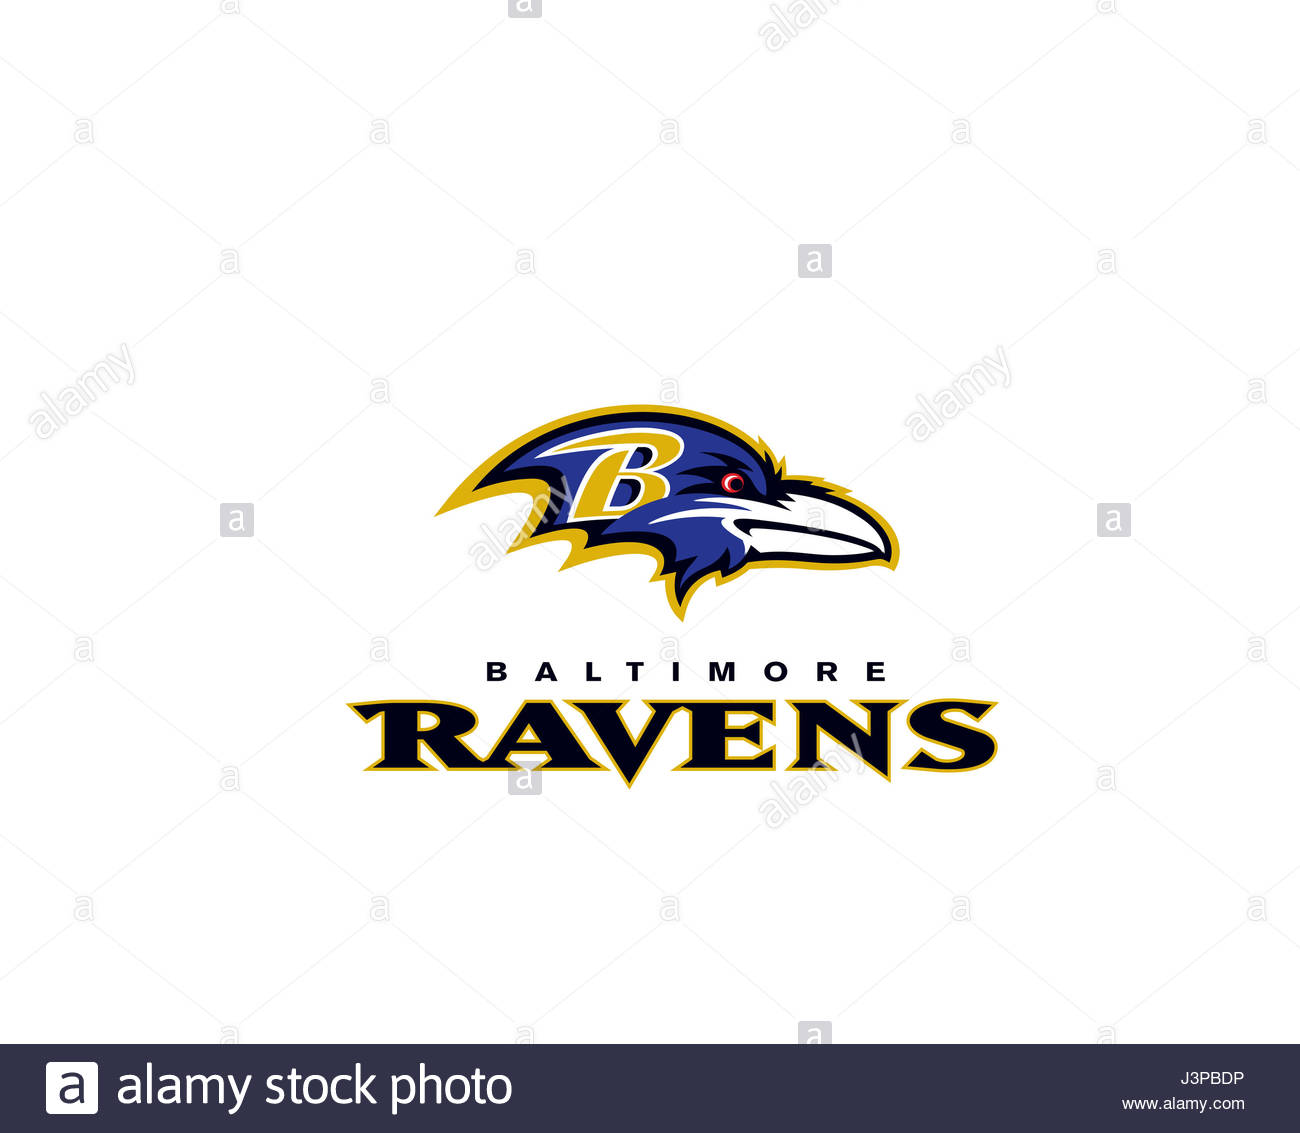 Baltimore Ravens NFL team - Stock Image